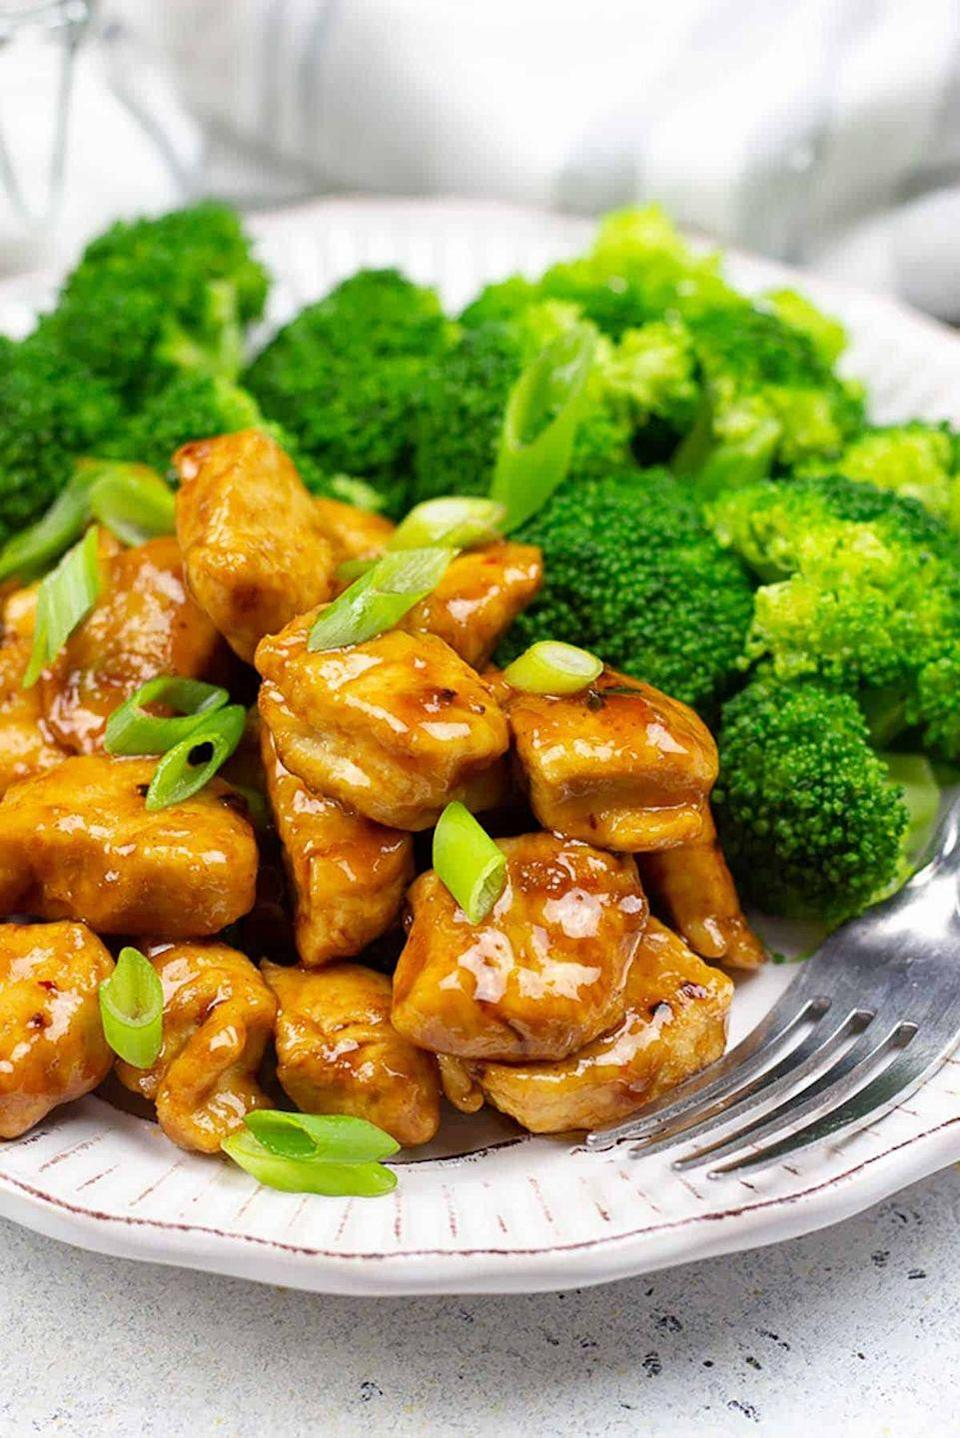 """<p>If you got 10 minutes you can make your own homemade, heart-healthy version of General Tso's Chicken faster than Grubhub could arrive at your door. It's so simple: All you need to do is mix the sauce, cook up the chicken in spices, top with green onion, and voilà! You can then sautée some of your favorite vegetables (like broccoli or string beans) to add some nutrient-dense foods to your plate.</p><p><em><a href=""""https://www.diabeticfoodie.com/general-tsos-chicken/"""" rel=""""nofollow noopener"""" target=""""_blank"""" data-ylk=""""slk:Get the recipe for Low-Carb General Tso's Chicken from Diabetic Foodie »"""" class=""""link rapid-noclick-resp"""">Get the recipe for Low-Carb General Tso's Chicken from Diabetic Foodie »</a></em></p>"""